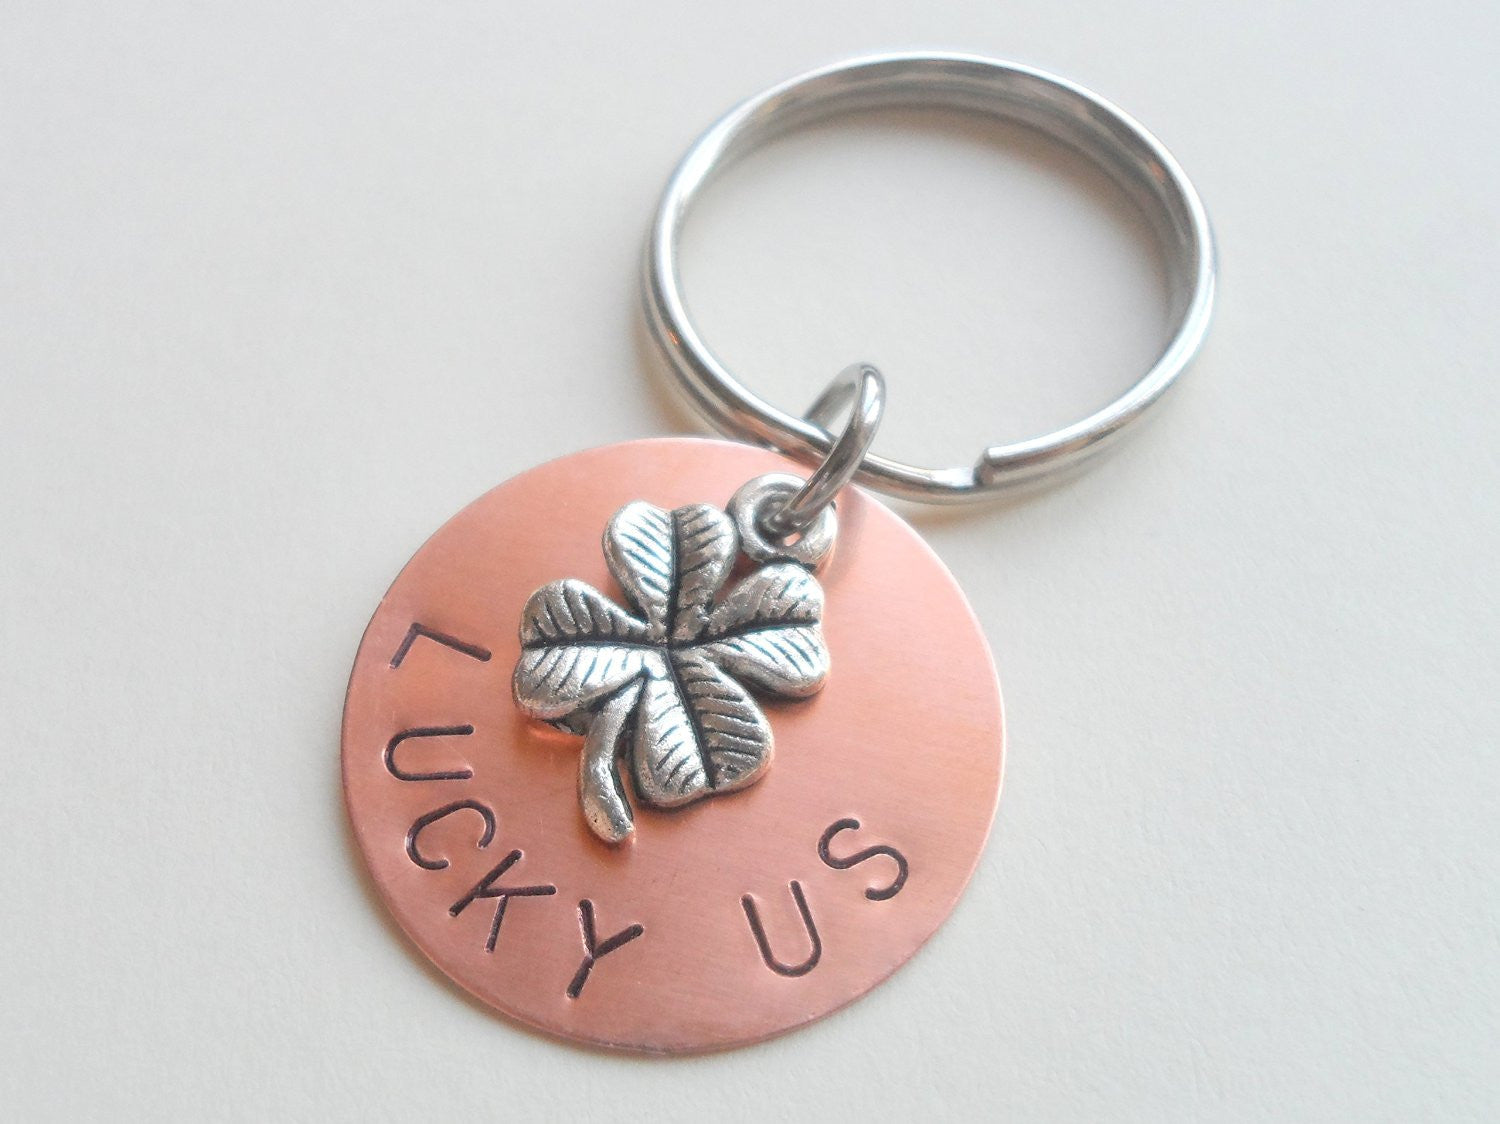 Copper Disc Keychain Hand Stamped with